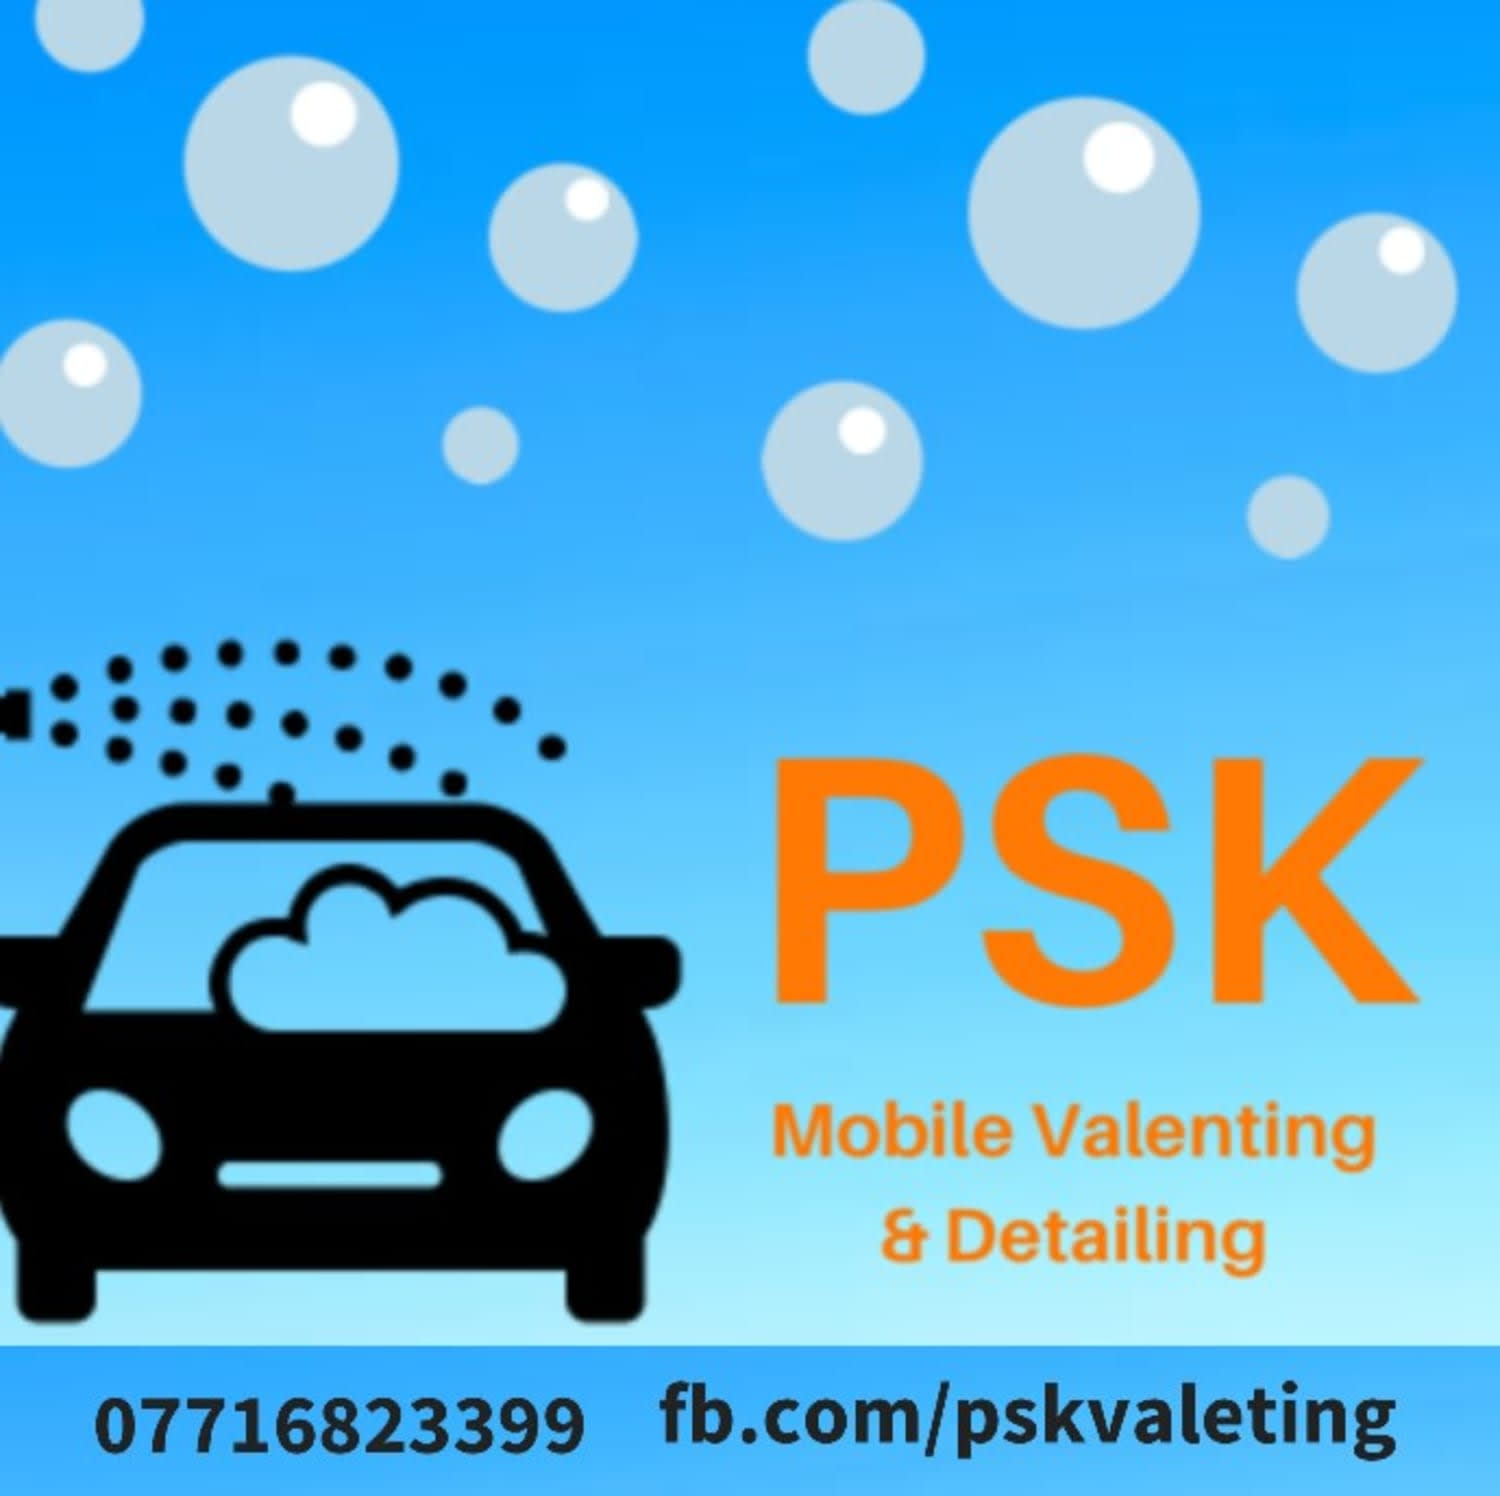 PSK Mobile Valeting & Detailing